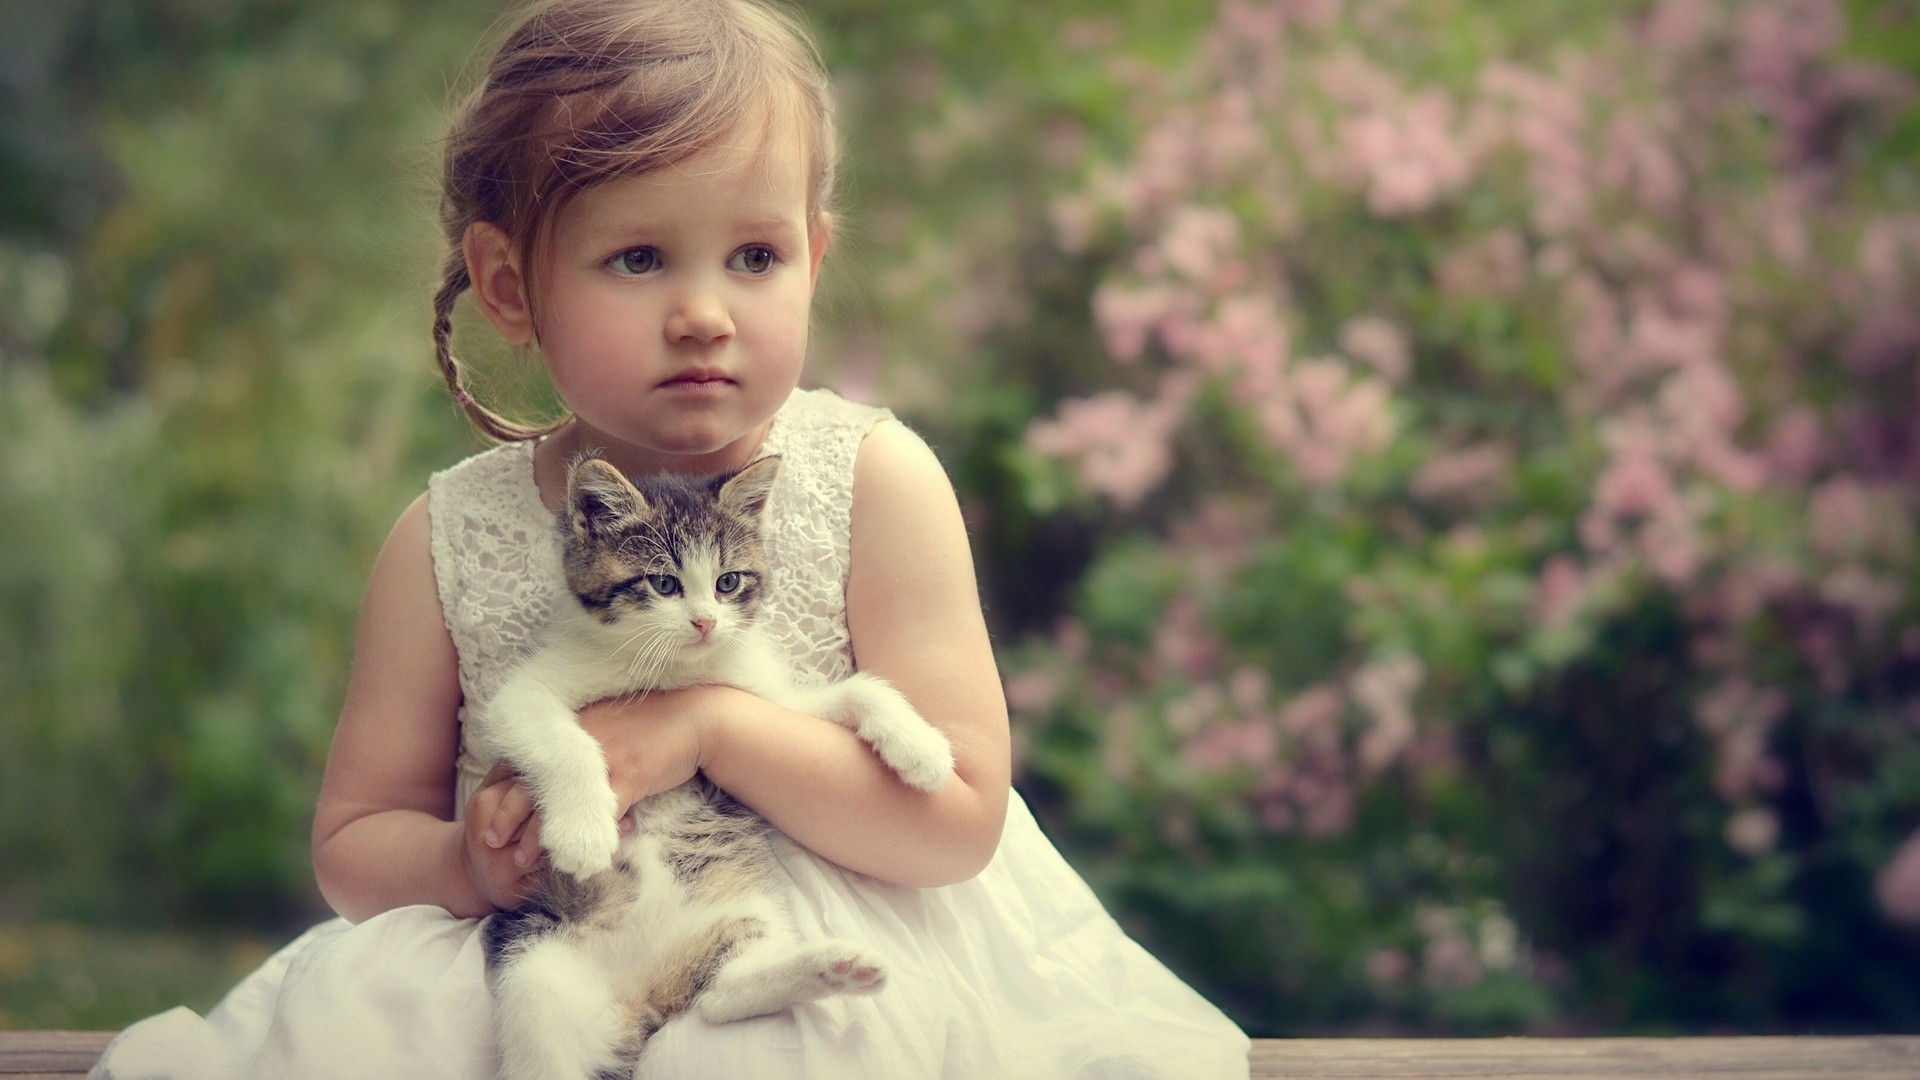 Cute Baby Girl Pictures Wallpapers: Cute Laptop Wallpapers For Girls (74+ Images